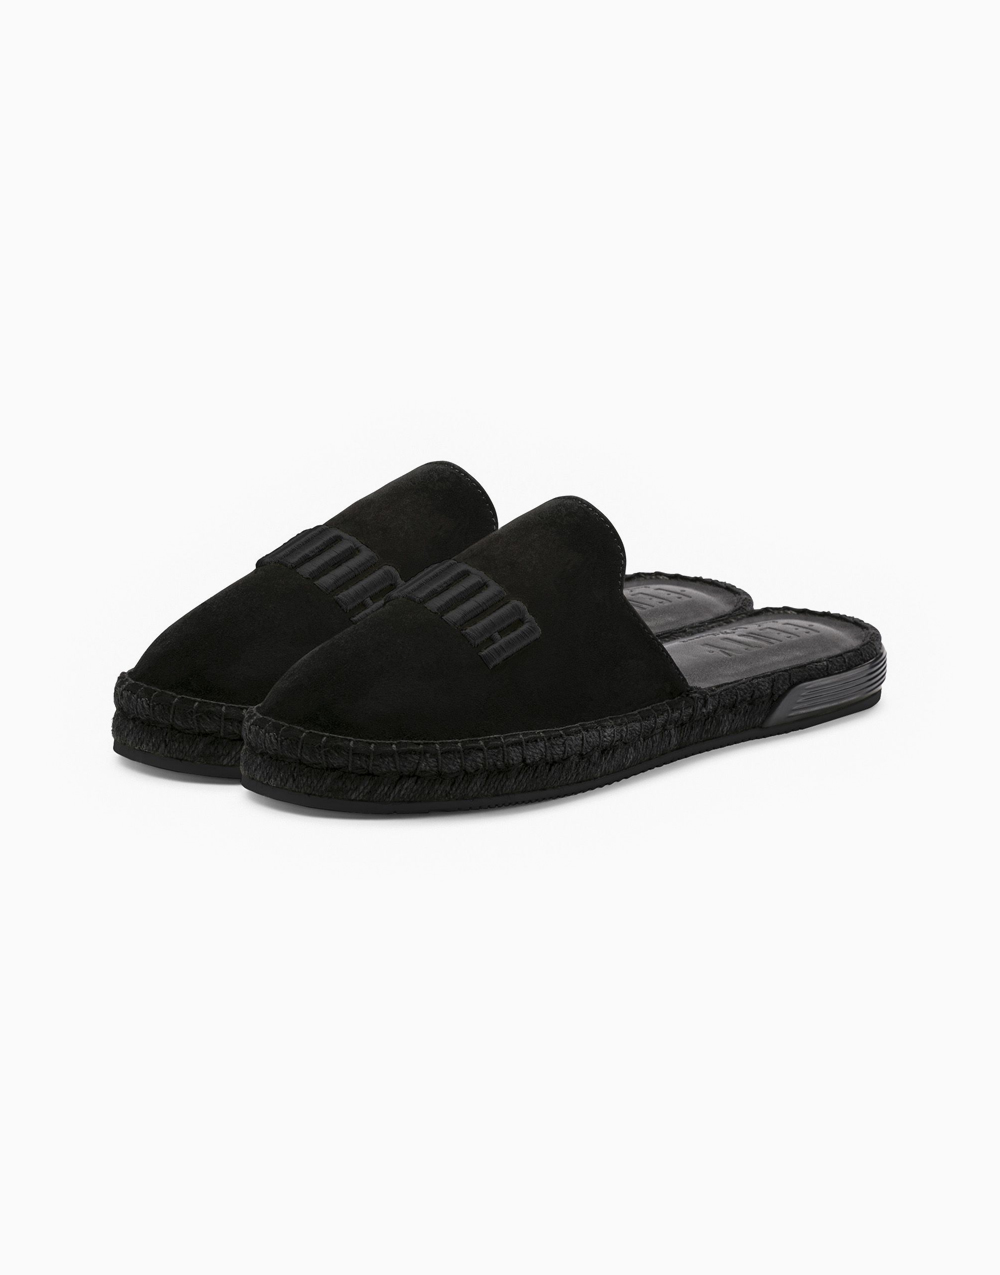 Fenty Espadrille in Black by Puma | US 6.5